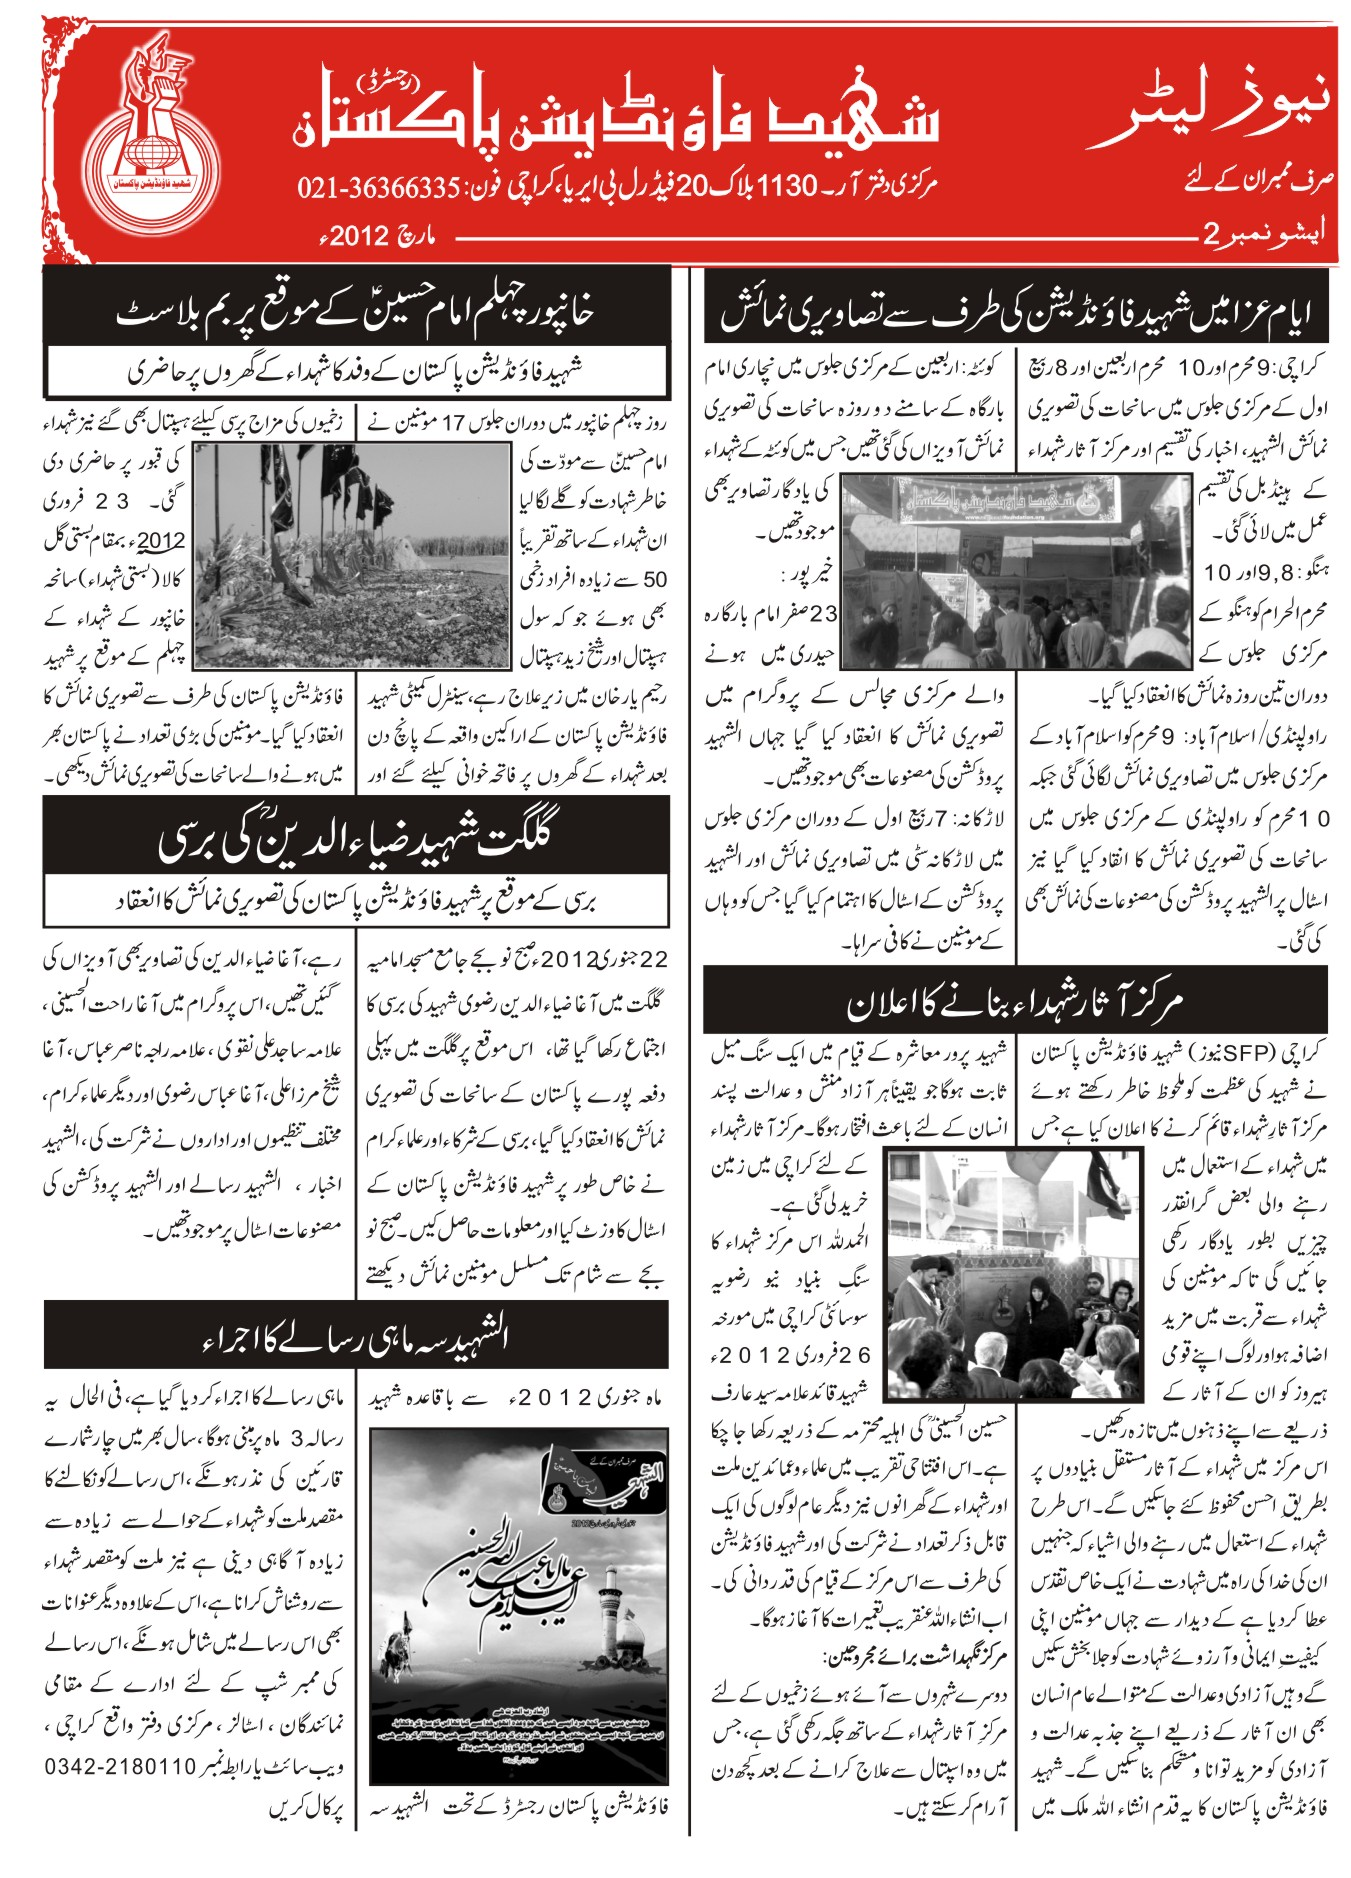 Al-Shaheed News Paper March 2012